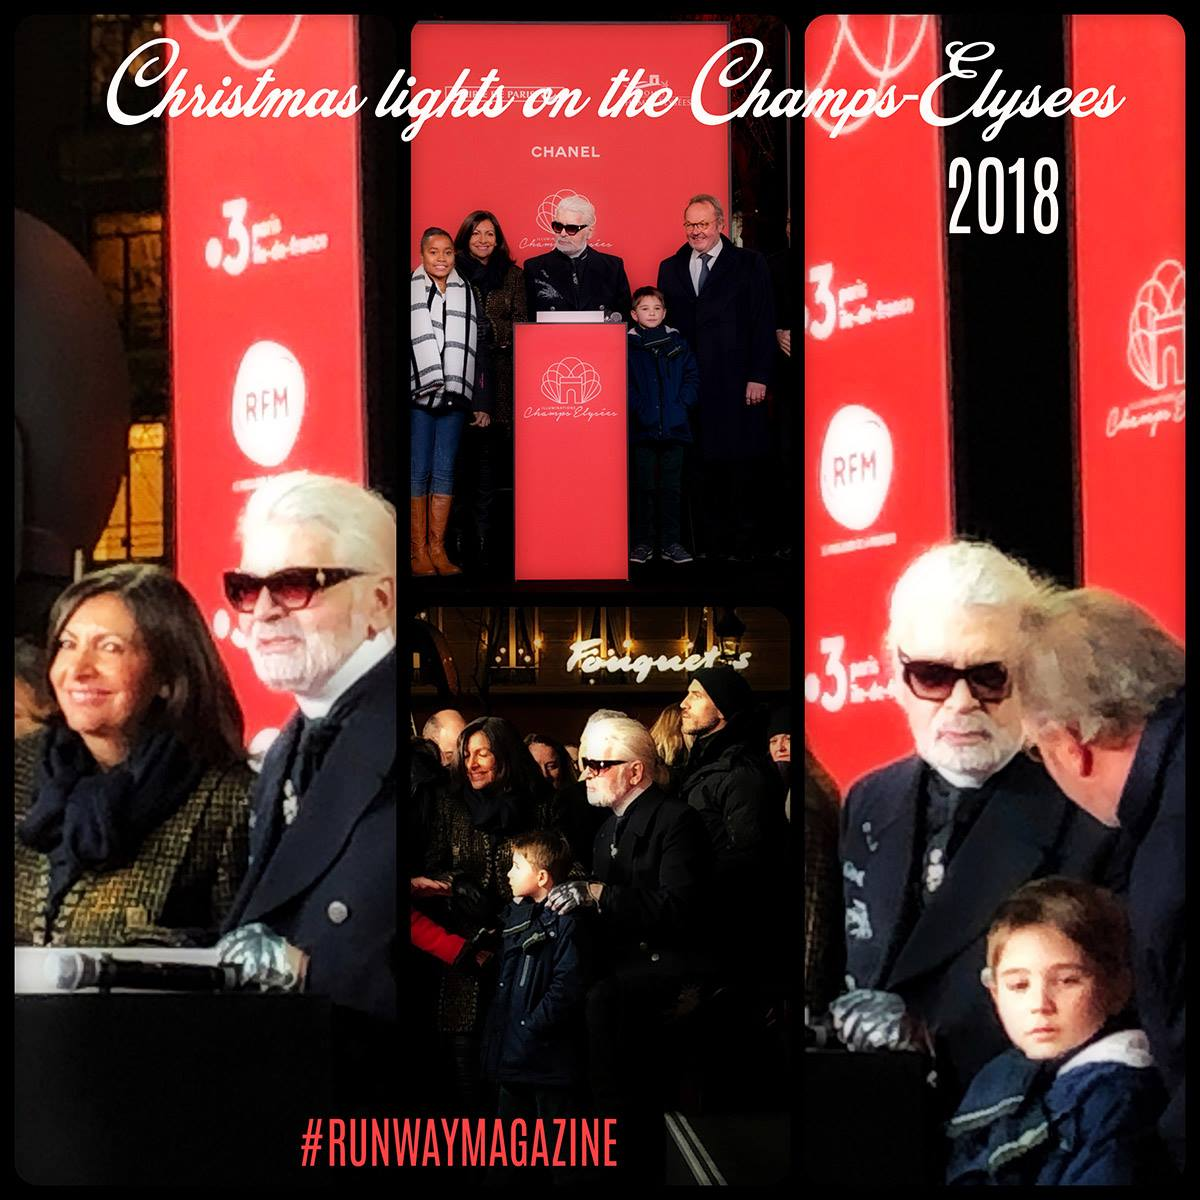 Karl Lagerfeld November 2018 at ceremony of Christmas lights by Runway Magazine